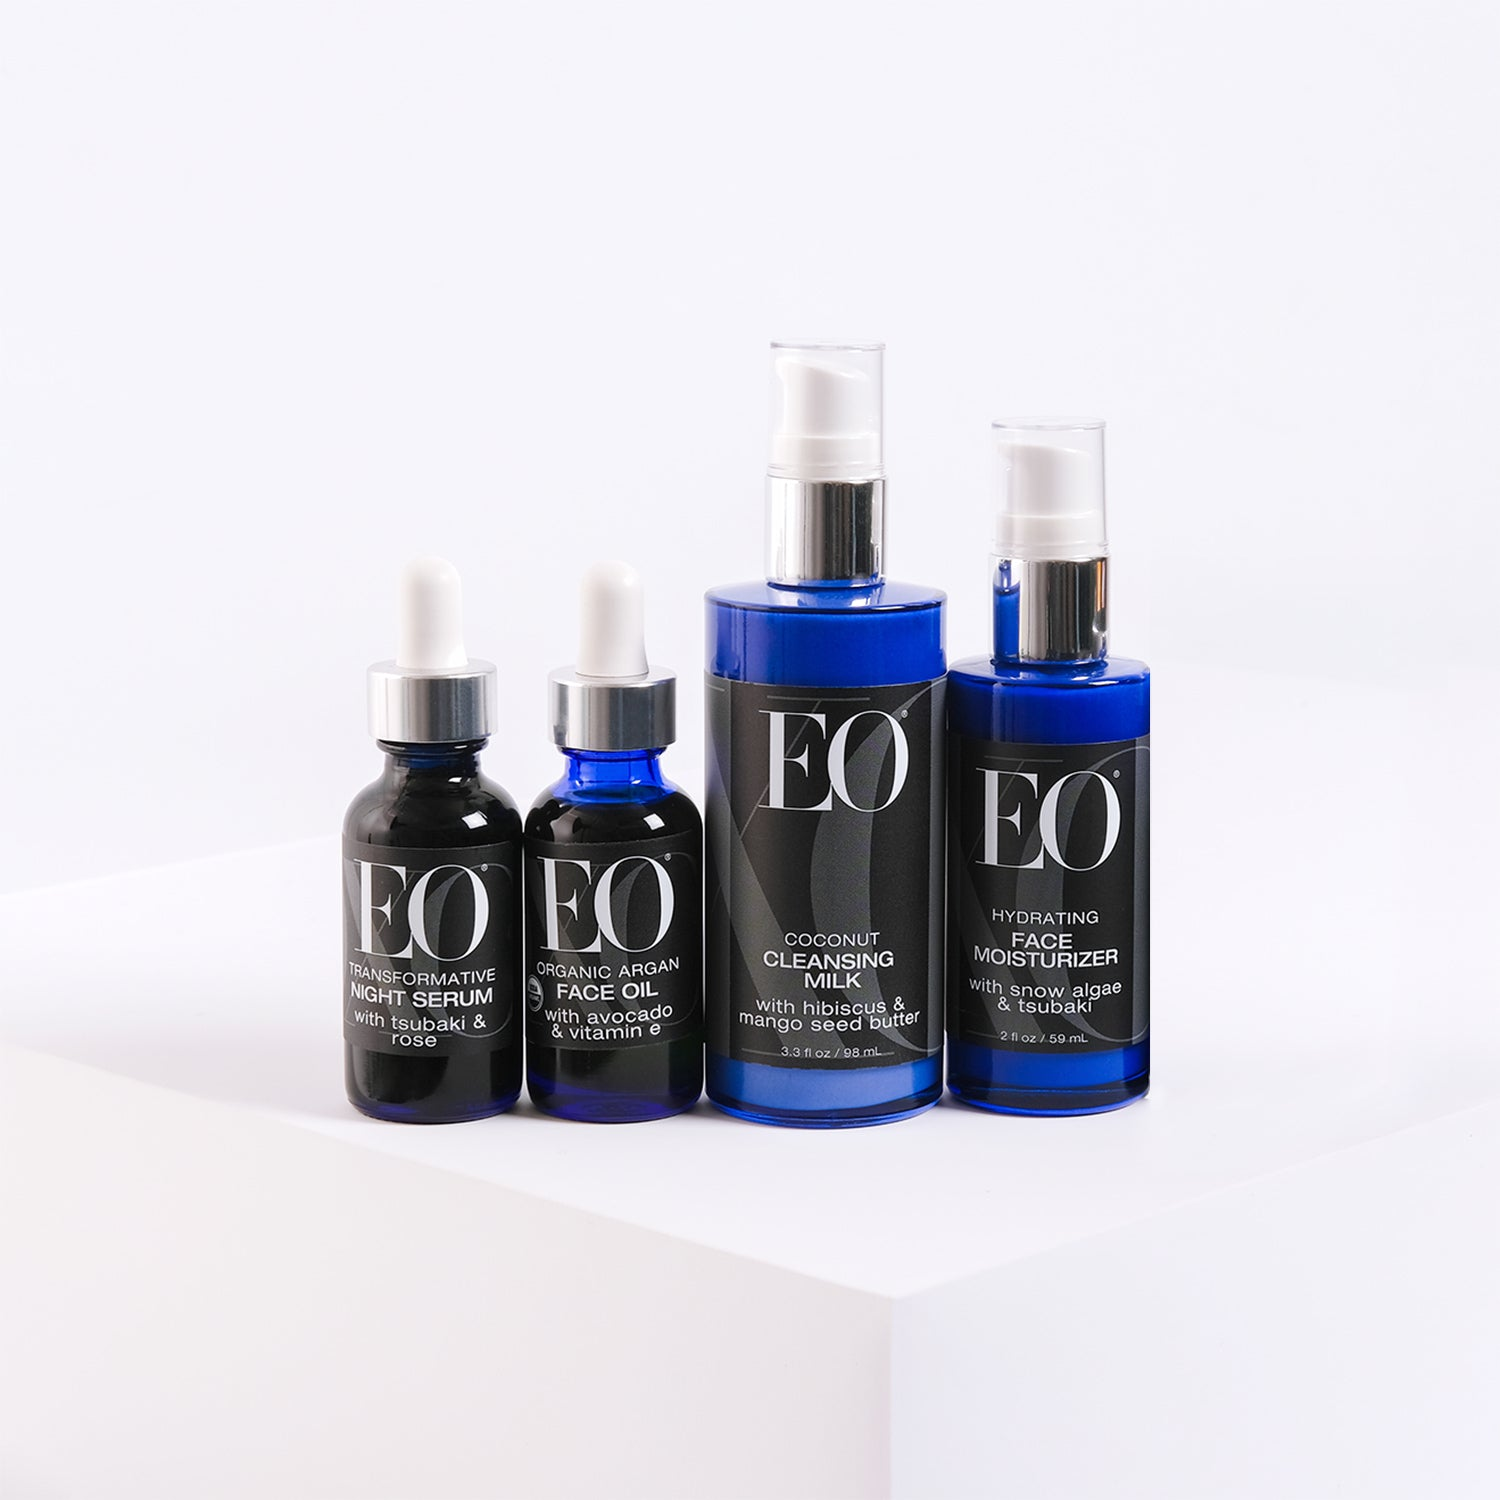 This set includes one bottle each of Organic Argan Face